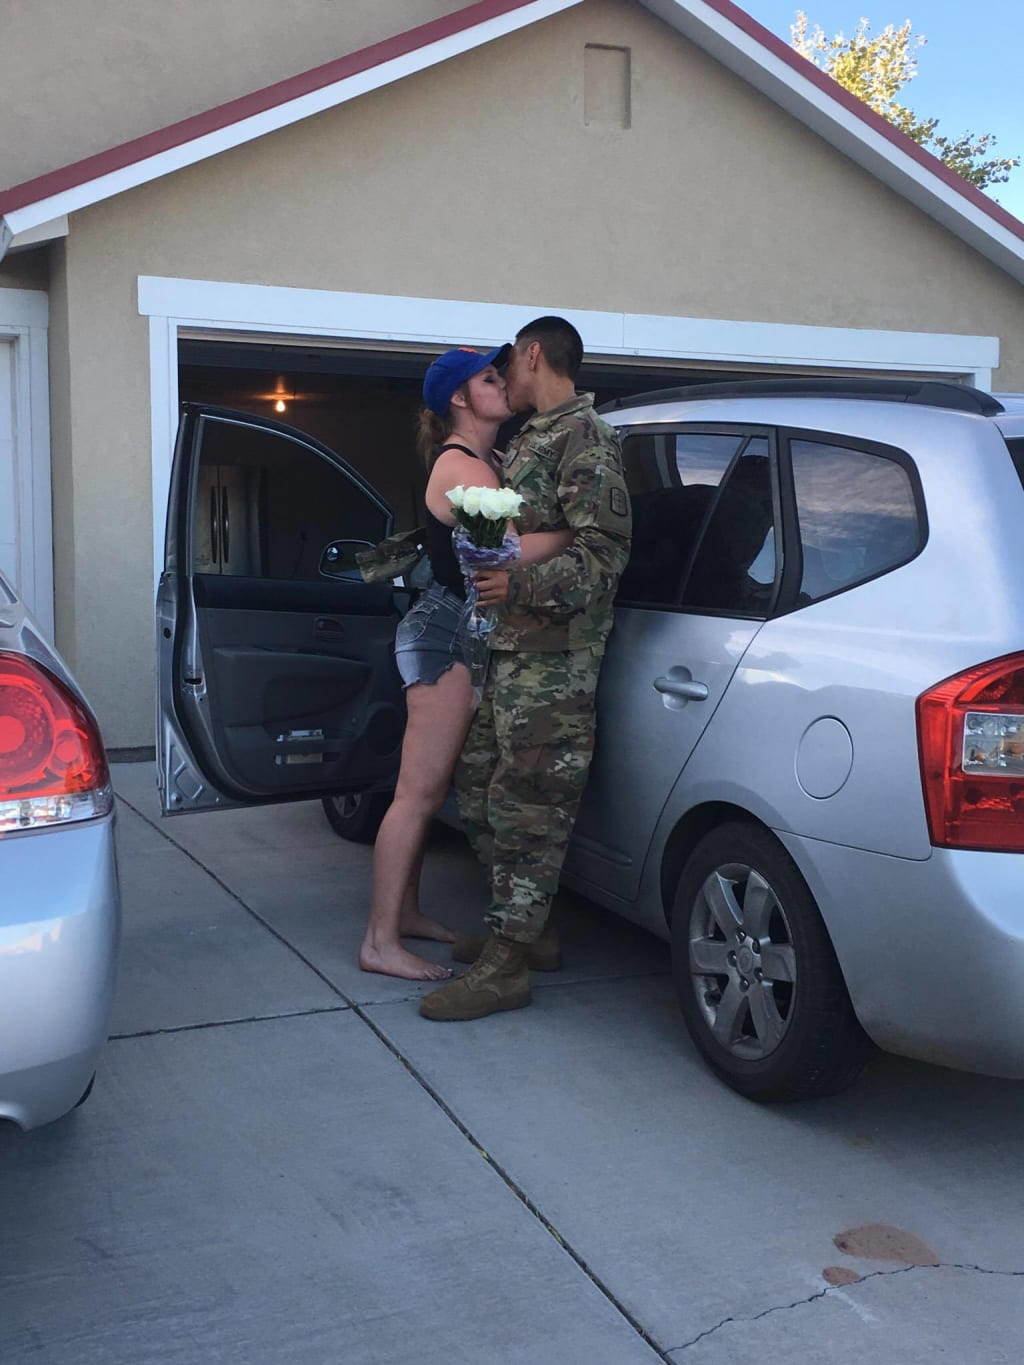 What to expect when dating an army man